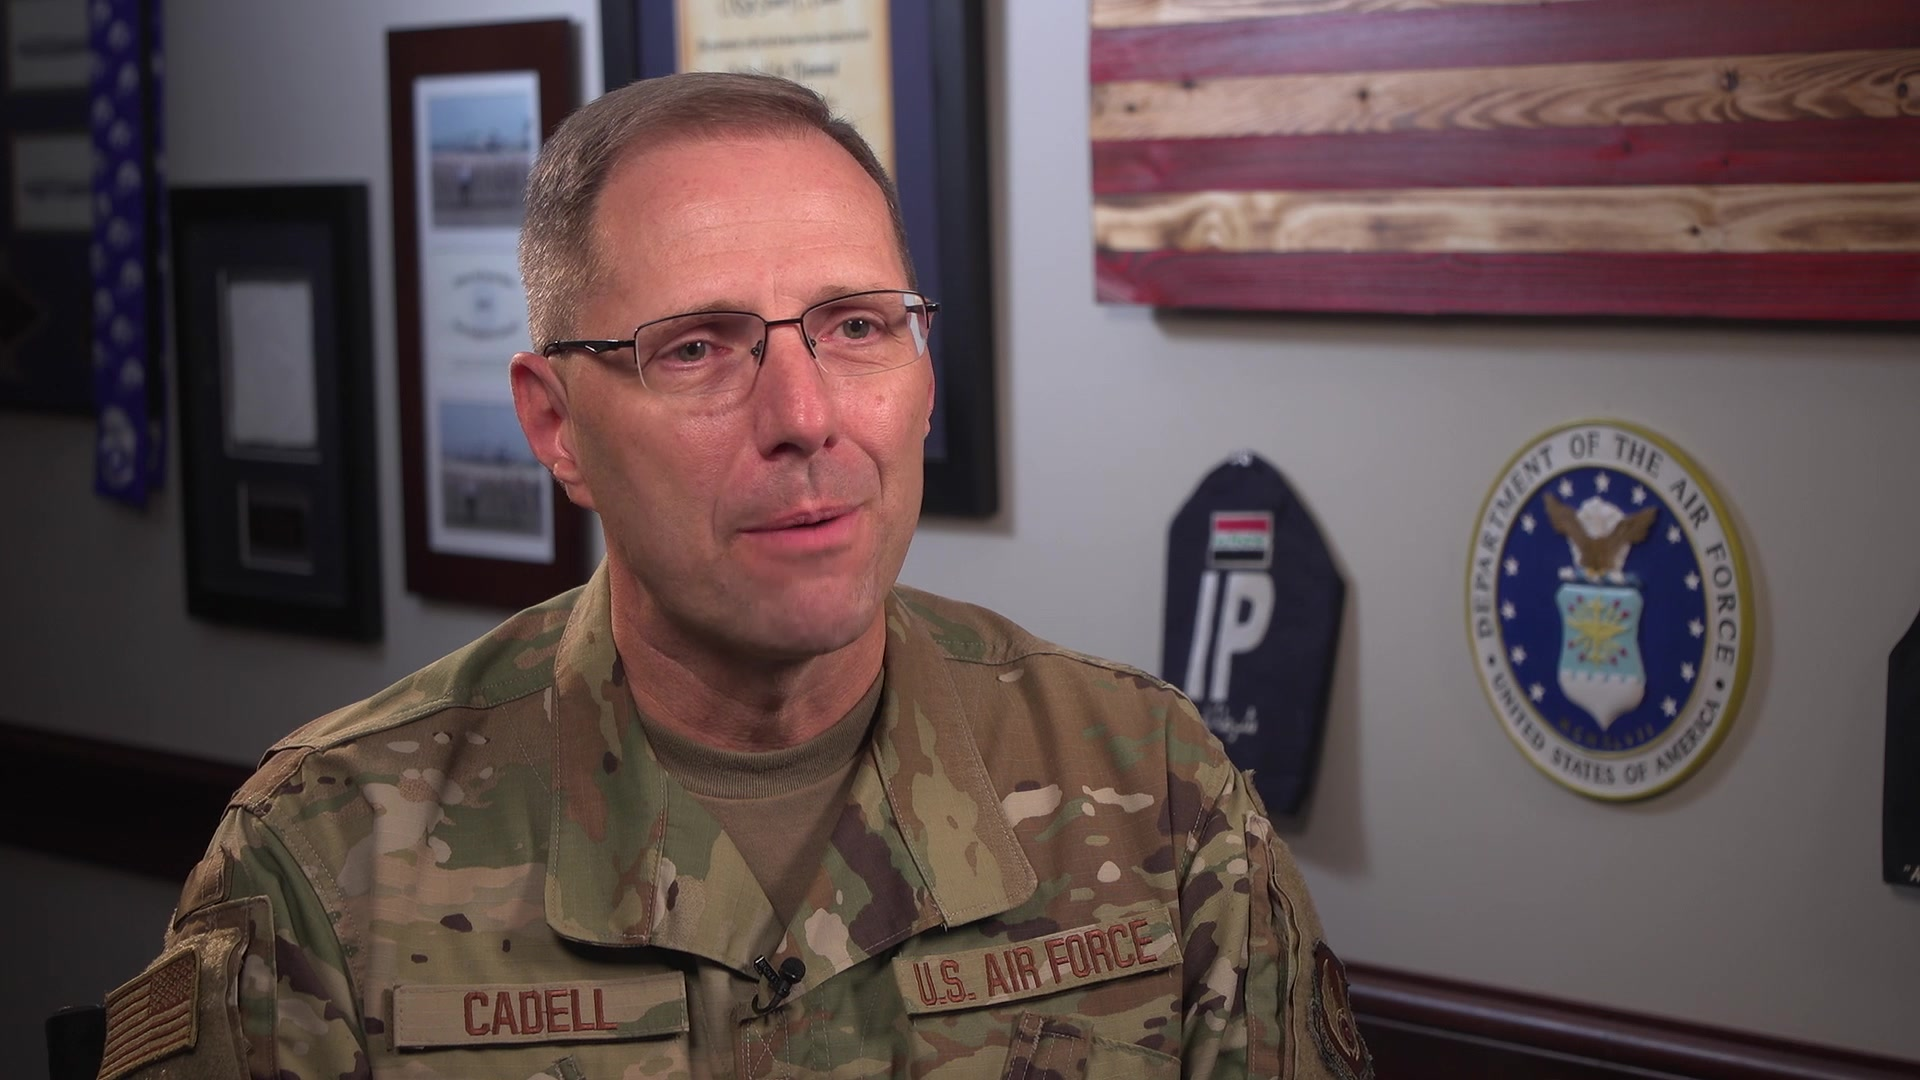 Chief Master Sgt. Stanley Cadell, Command Chief of Air Force Materiel Command, Wright-Patterson Air Force Base, Ohio, shares his perspectives on the importance of mentorship, July 30, 2019. AFMC shares the impact of mentoring through first-person experiences from its leaders. (U.S. Air Force Video by Matthew Clouse)